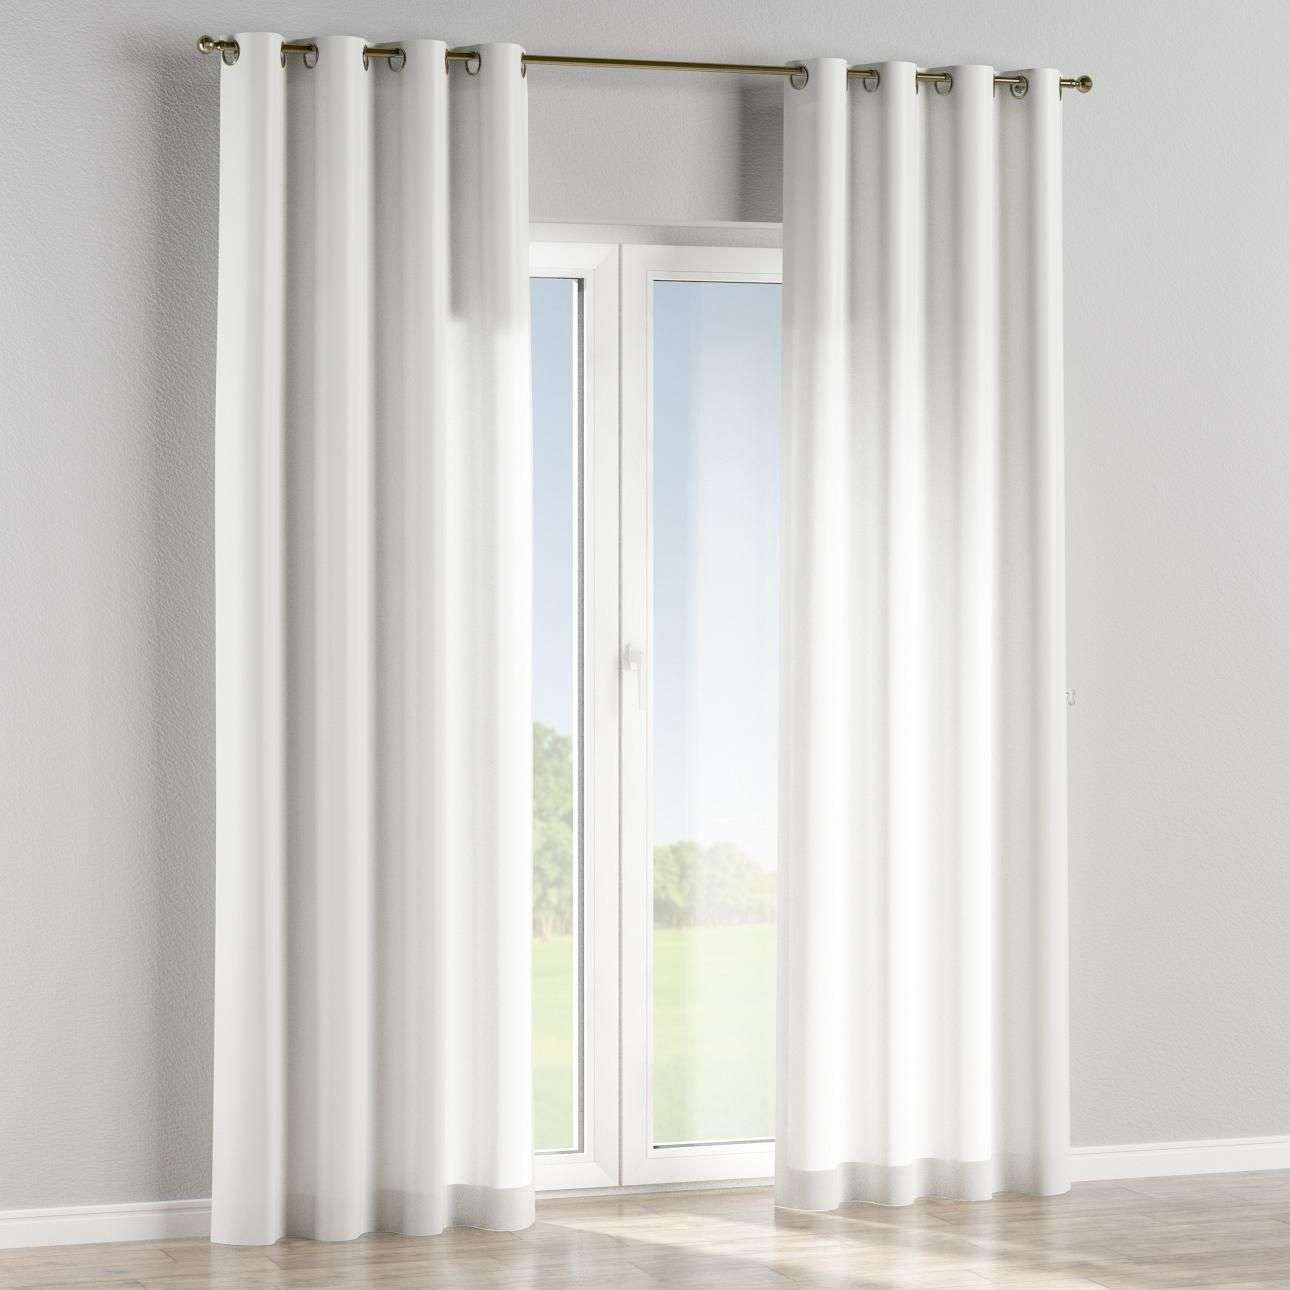 Eyelet lined curtains in collection Marina, fabric: 140-16